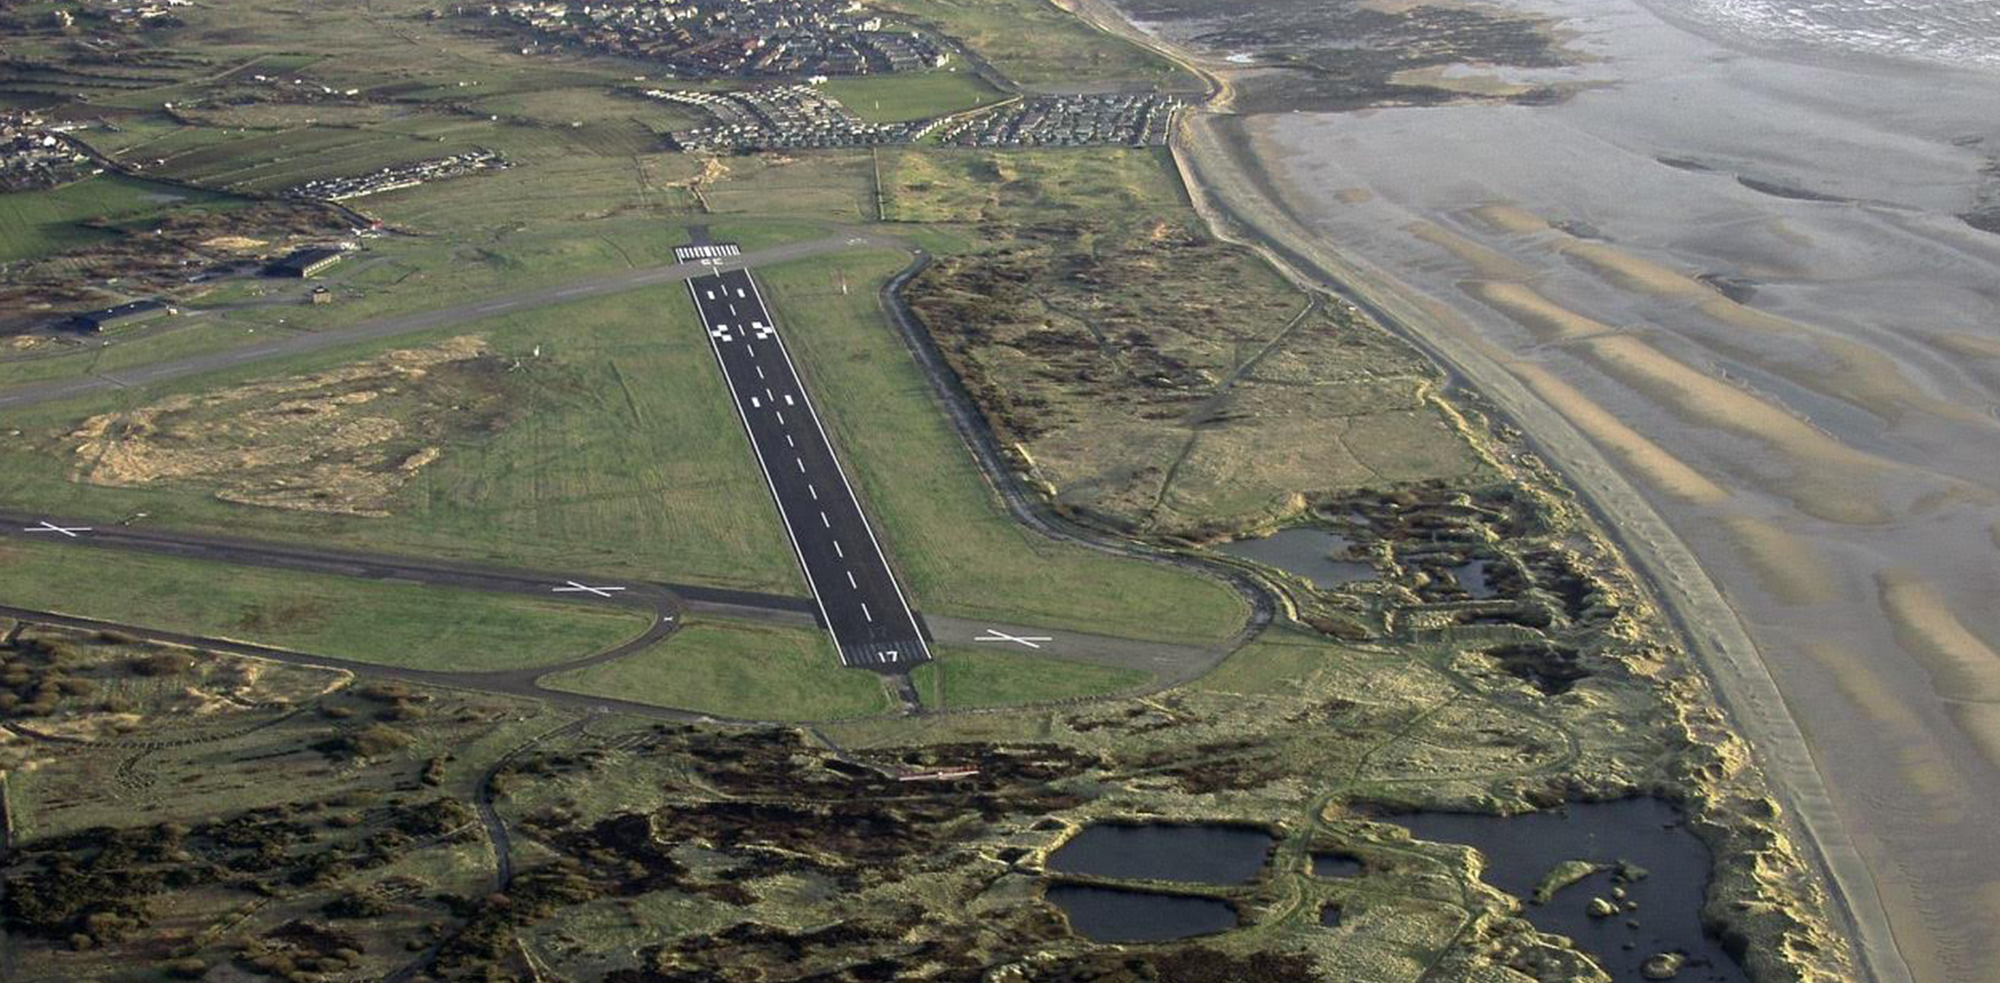 https://i0.wp.com/www.art-gene.co.uk/wp-content/uploads/2016/10/HEADER-FORT-WALNEY-Lawrence-Hill-2005-Aerial-Photos-of-the-North-Walney-National-Nature-Reserve.jpg?fit=2000%2C983